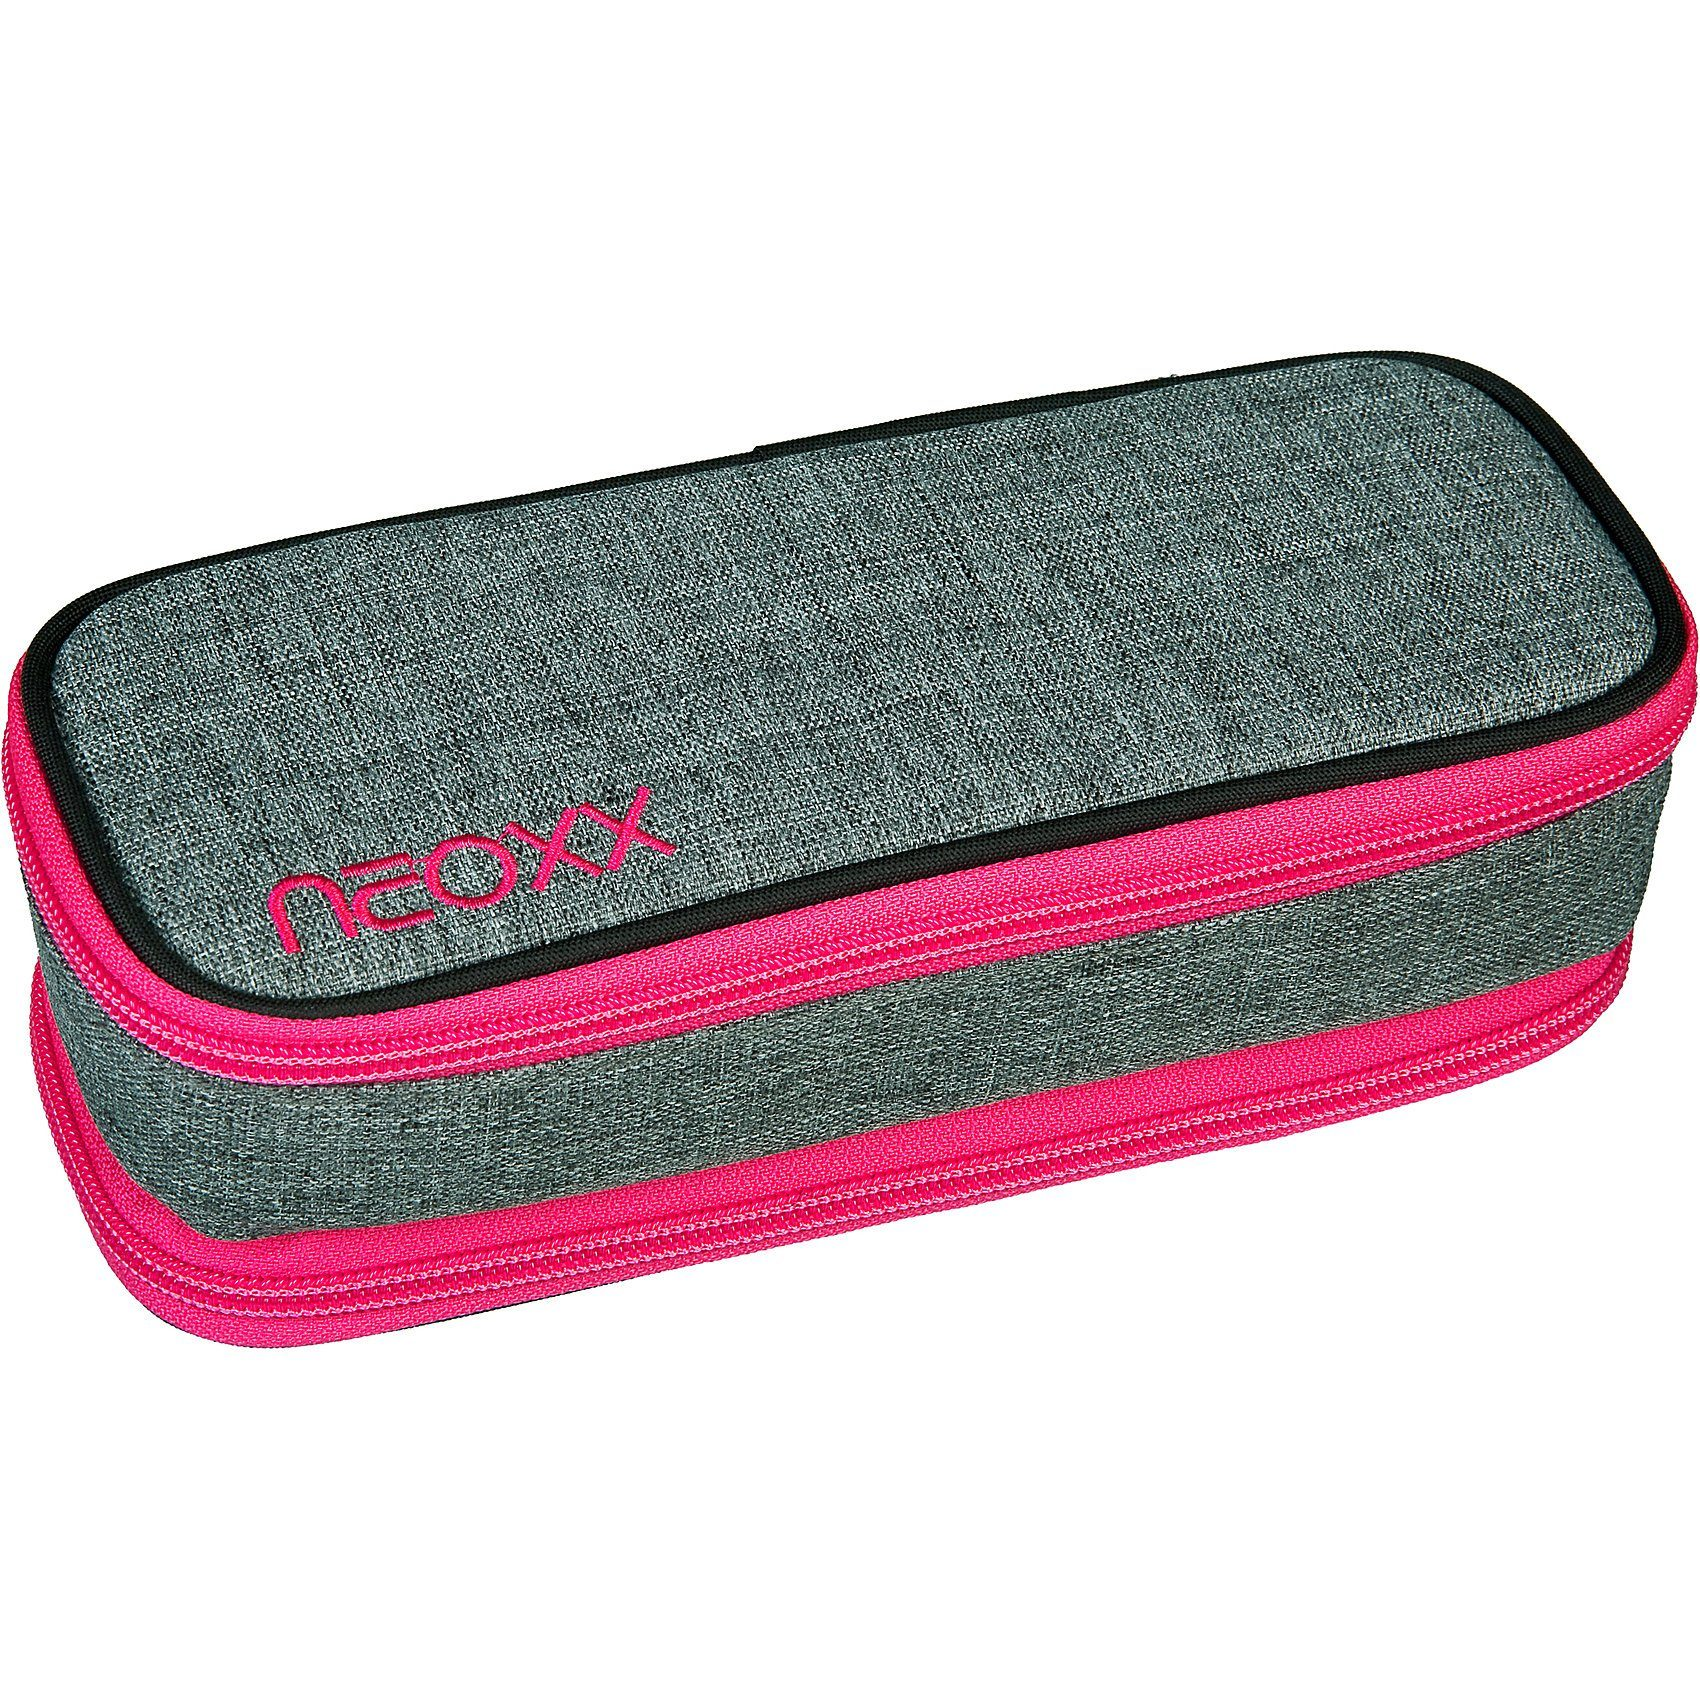 UNDERCOVER NEOXX NXNA7681 Schlamperbox neoxx Catch Pink and Famous